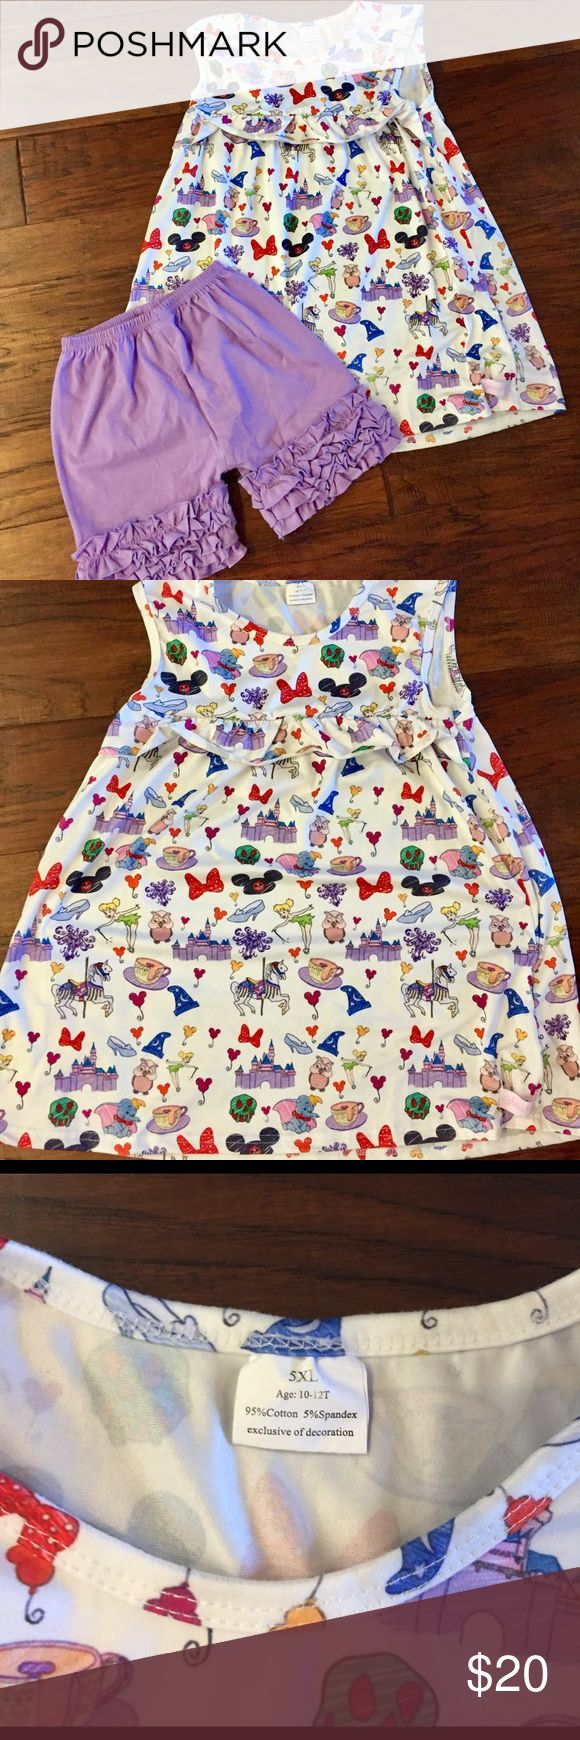 Adorable Disney print swing top/dress and shorts EEUC. Worn once. Perfect for Disney!!! SO cute! Size 10-12 Matching Sets